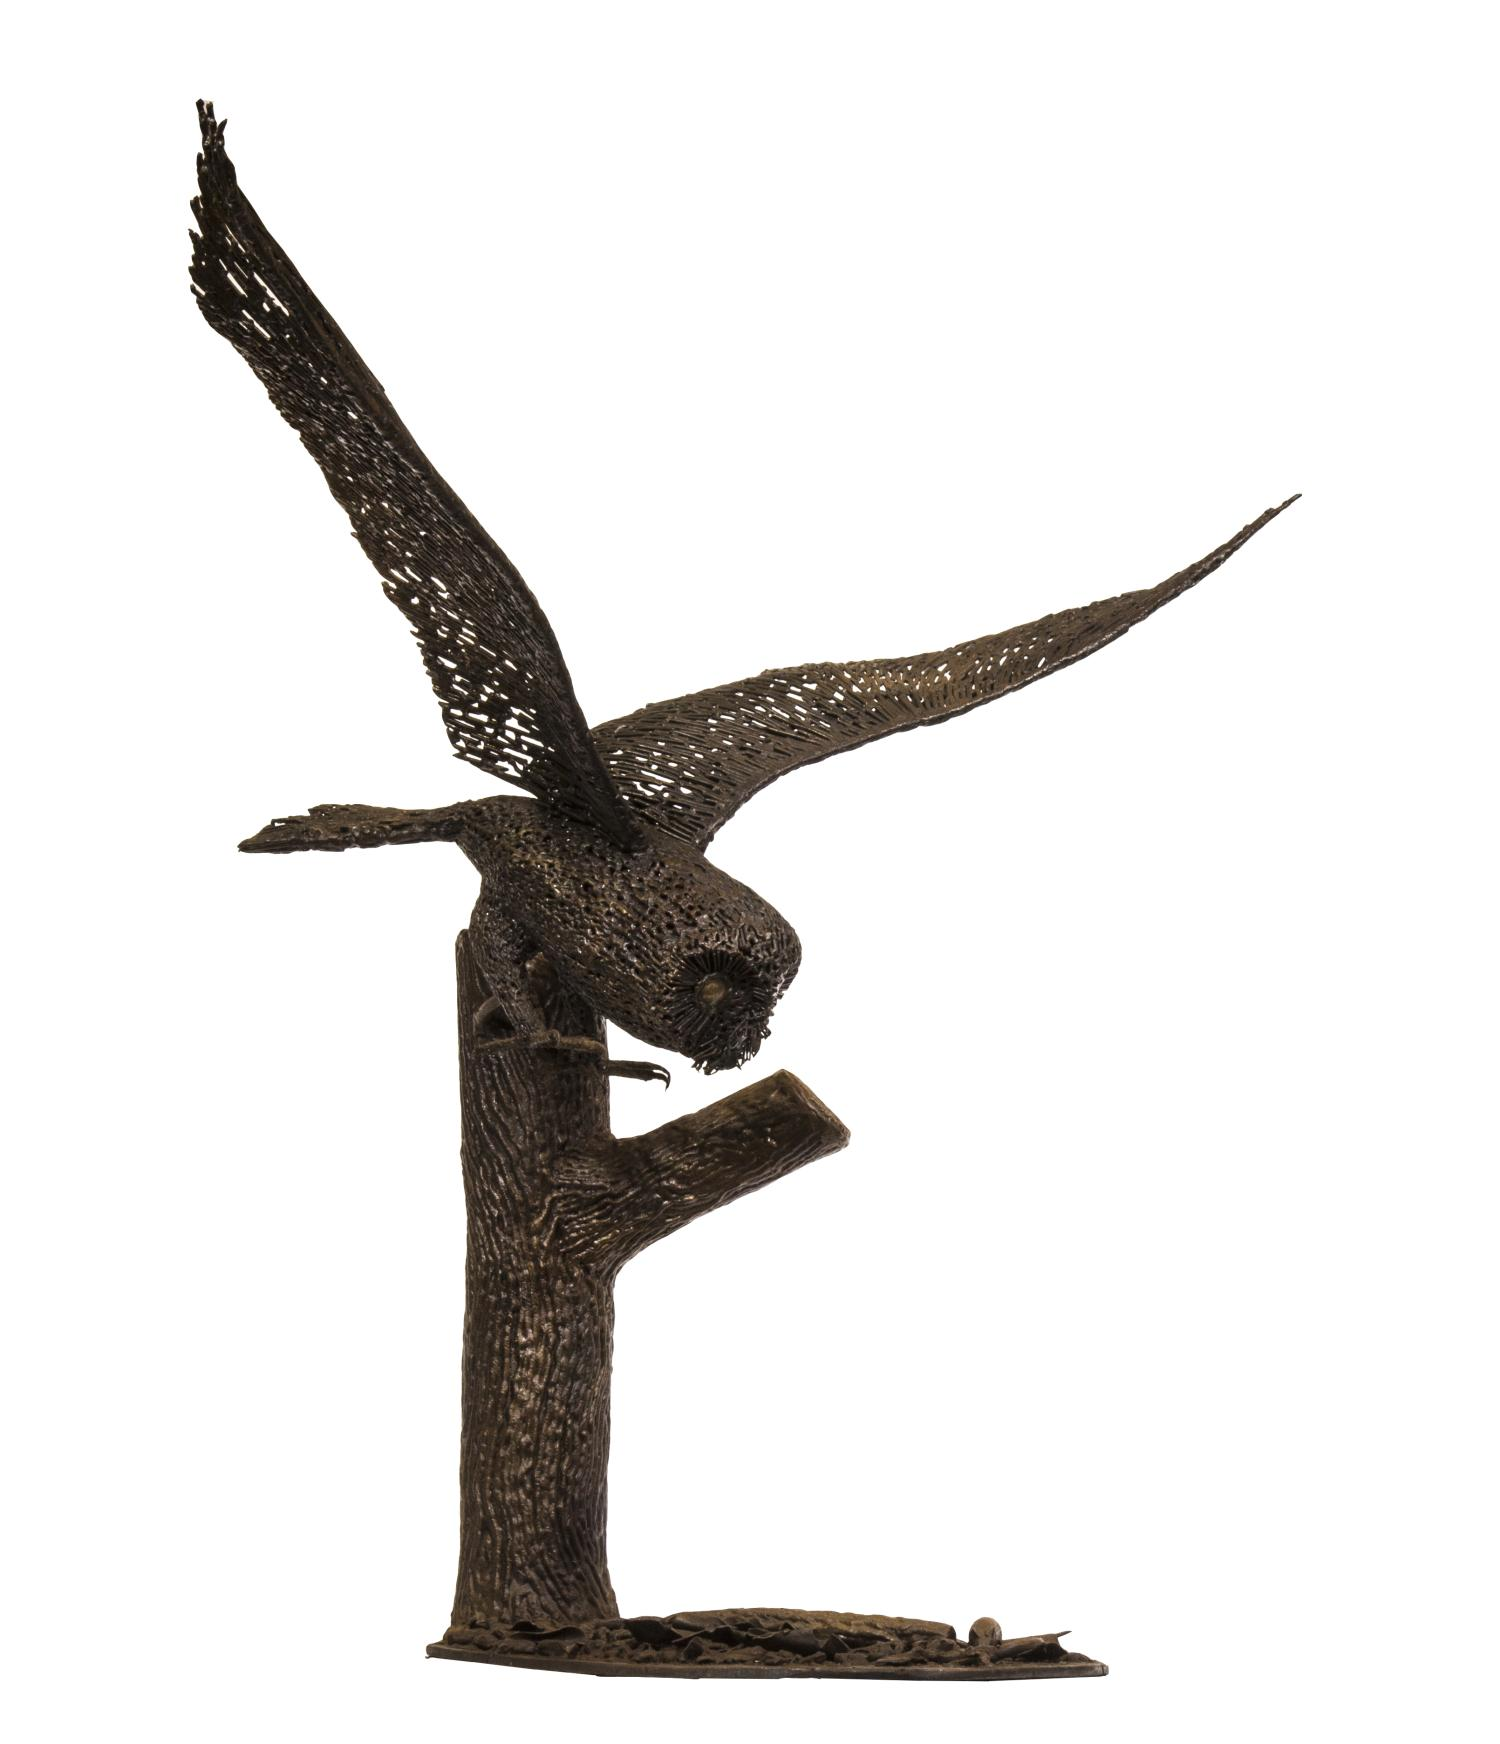 Lot 12 - Sculpture: Barn Owl Hunting, Mild steel, Unique, 84cm high by 96cm wide by 54cm deep